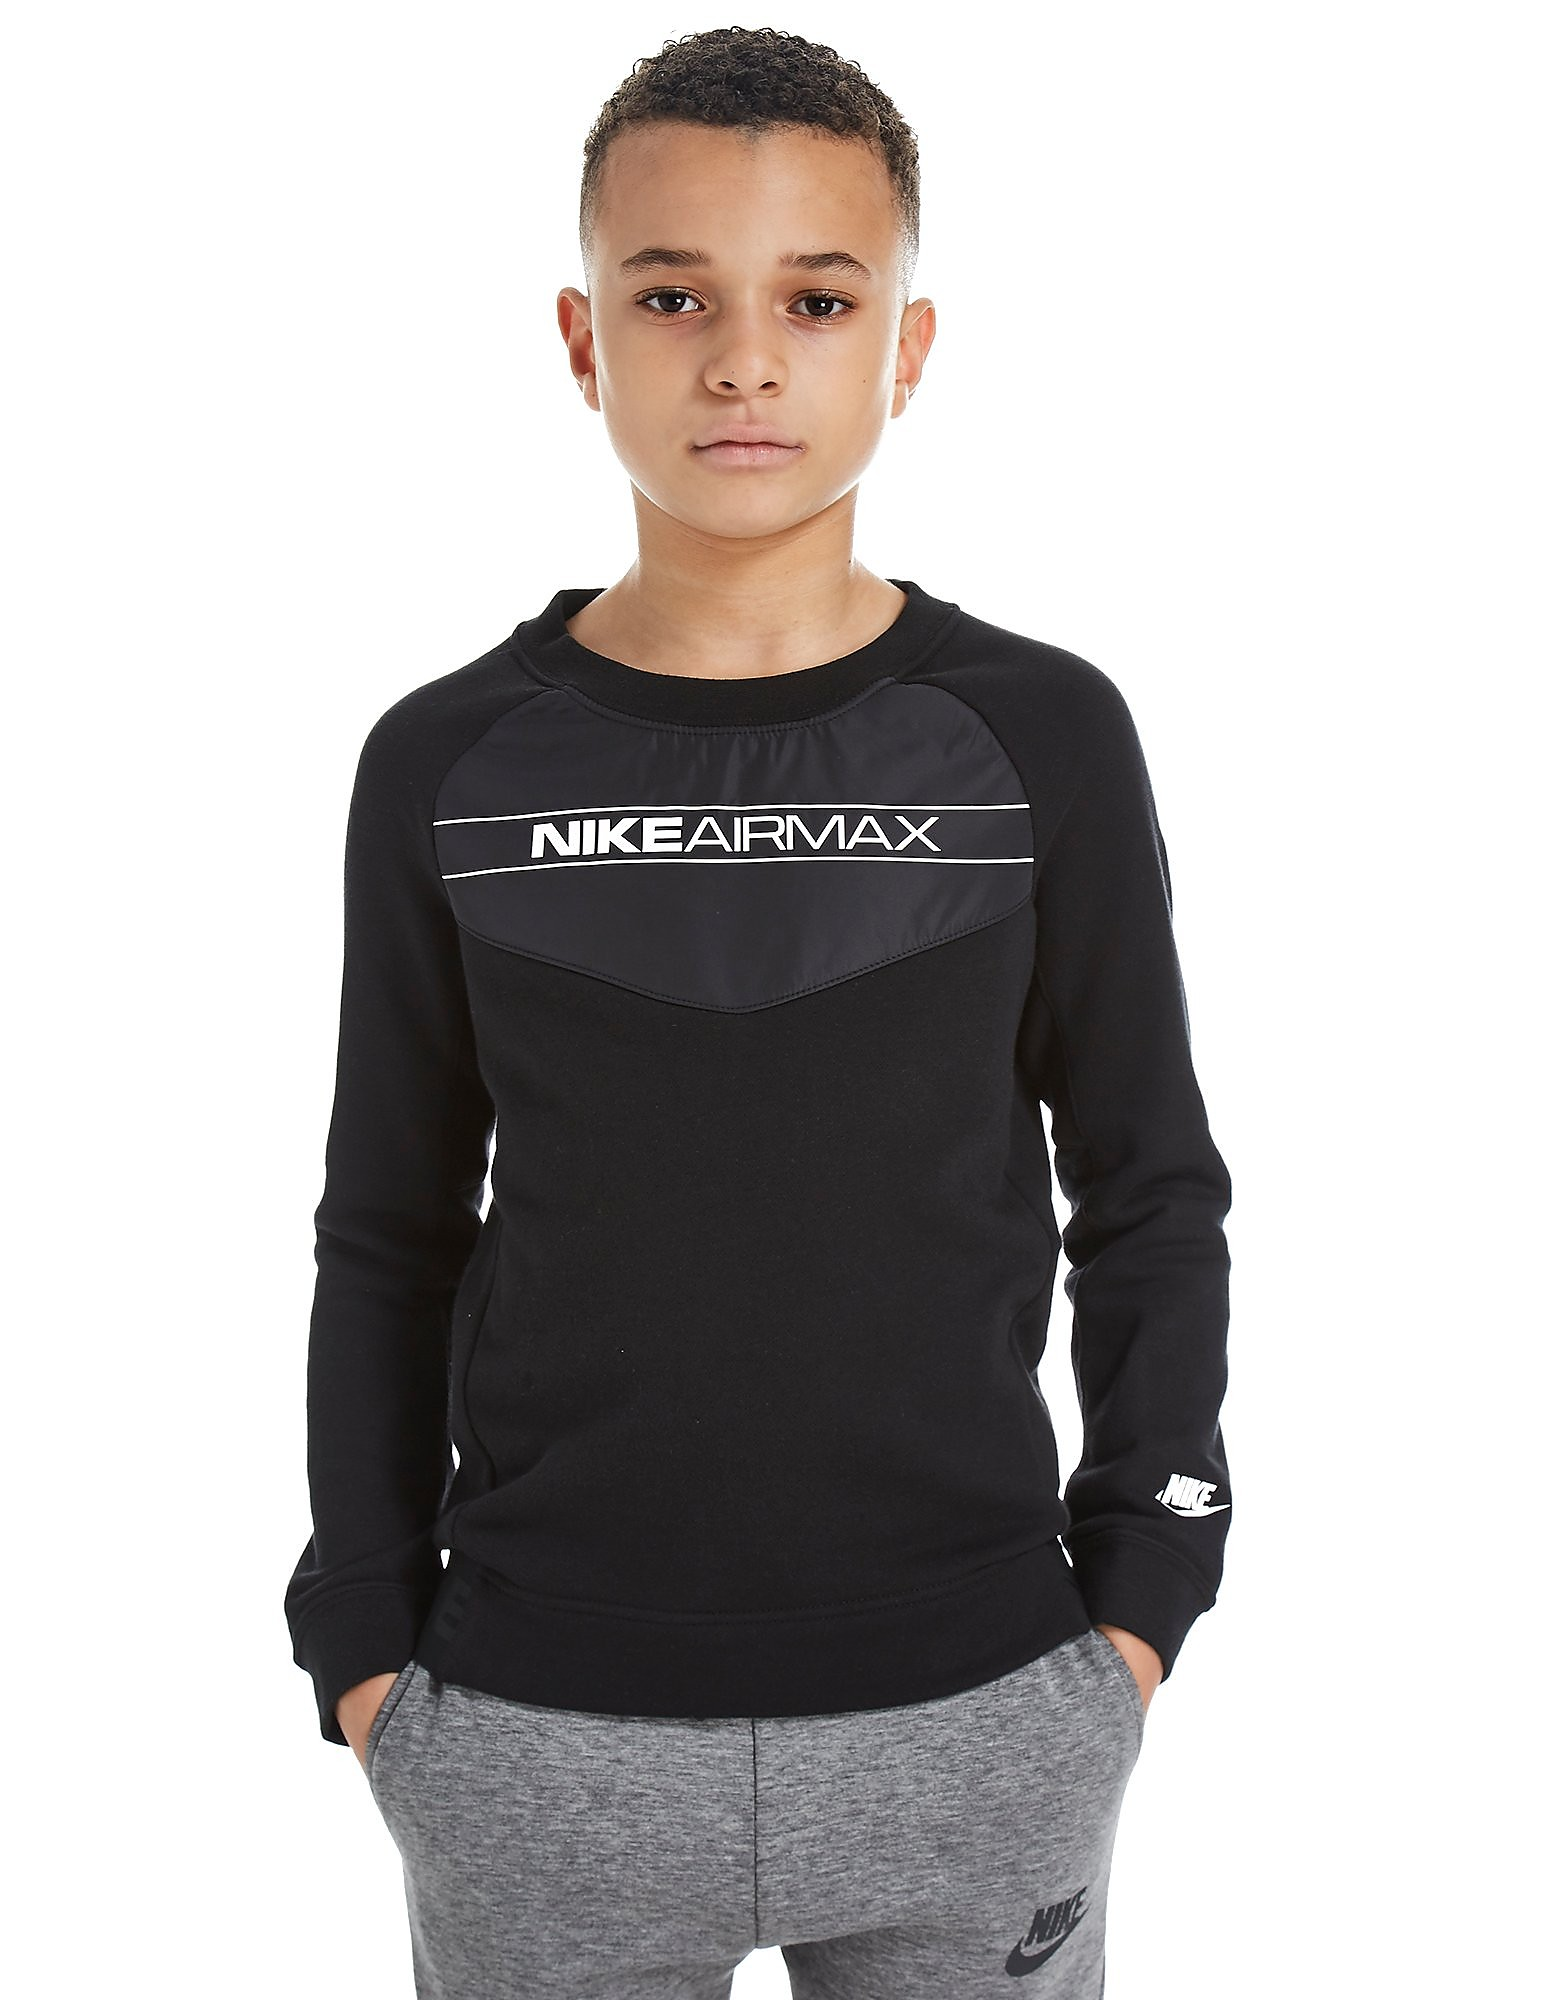 Nike Air Max Sweatshirt Junior